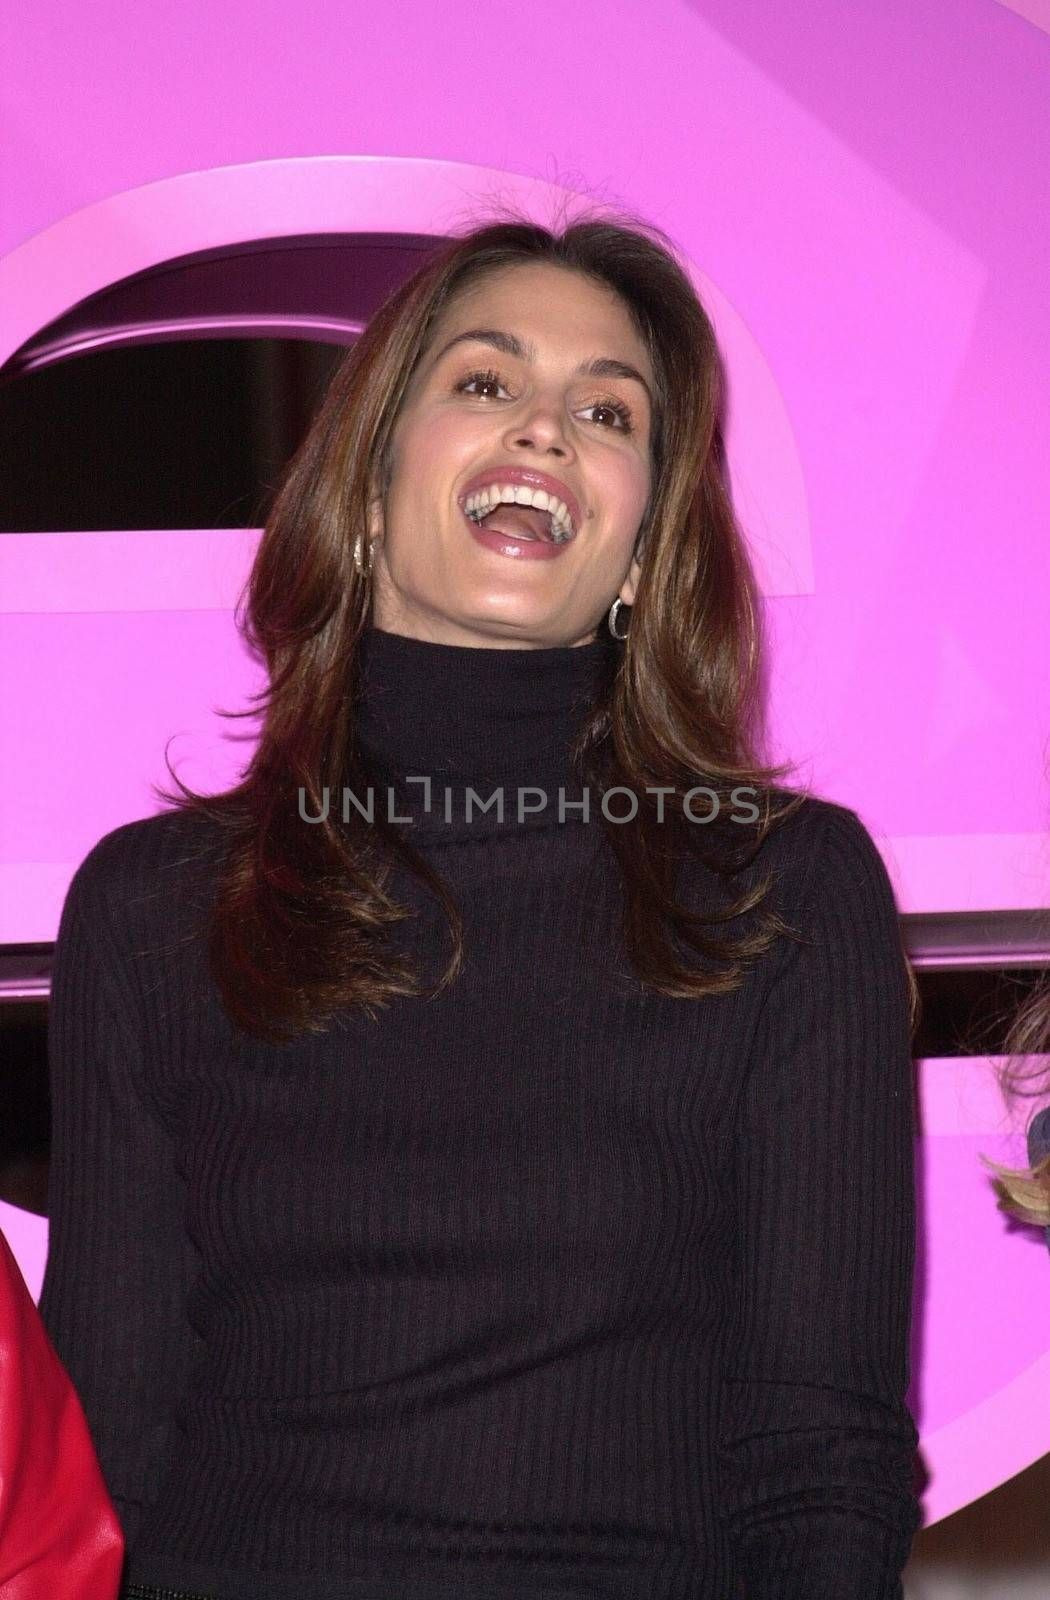 Cindy Crawford at the unveiling of the new name for Romance Classics Television in Los Angeles, 11-29-00